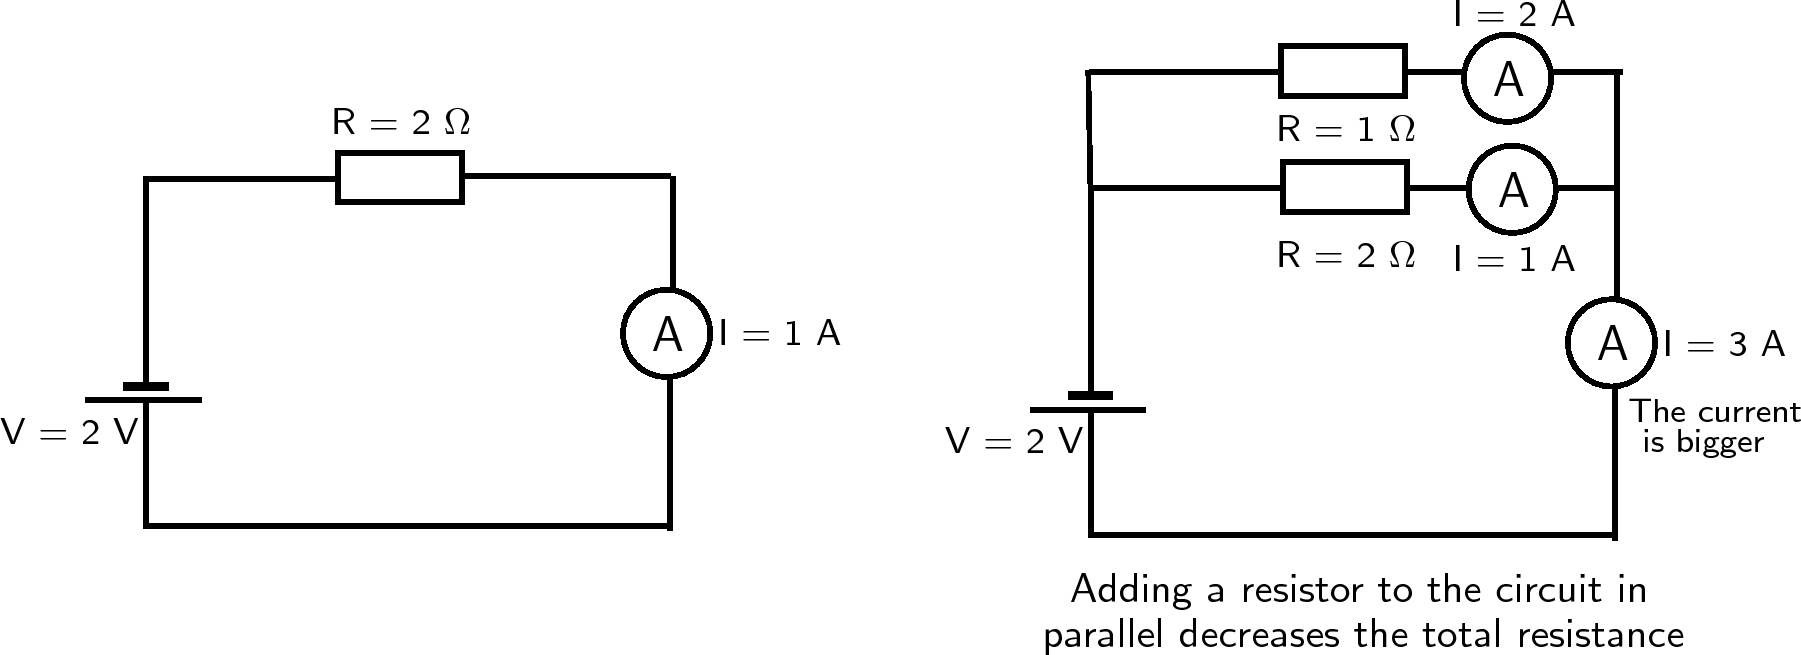 hight resolution of grade 9 circuit diagram problems wiring diagram post series circuit diagrams diagram pictures circuit diagrams image